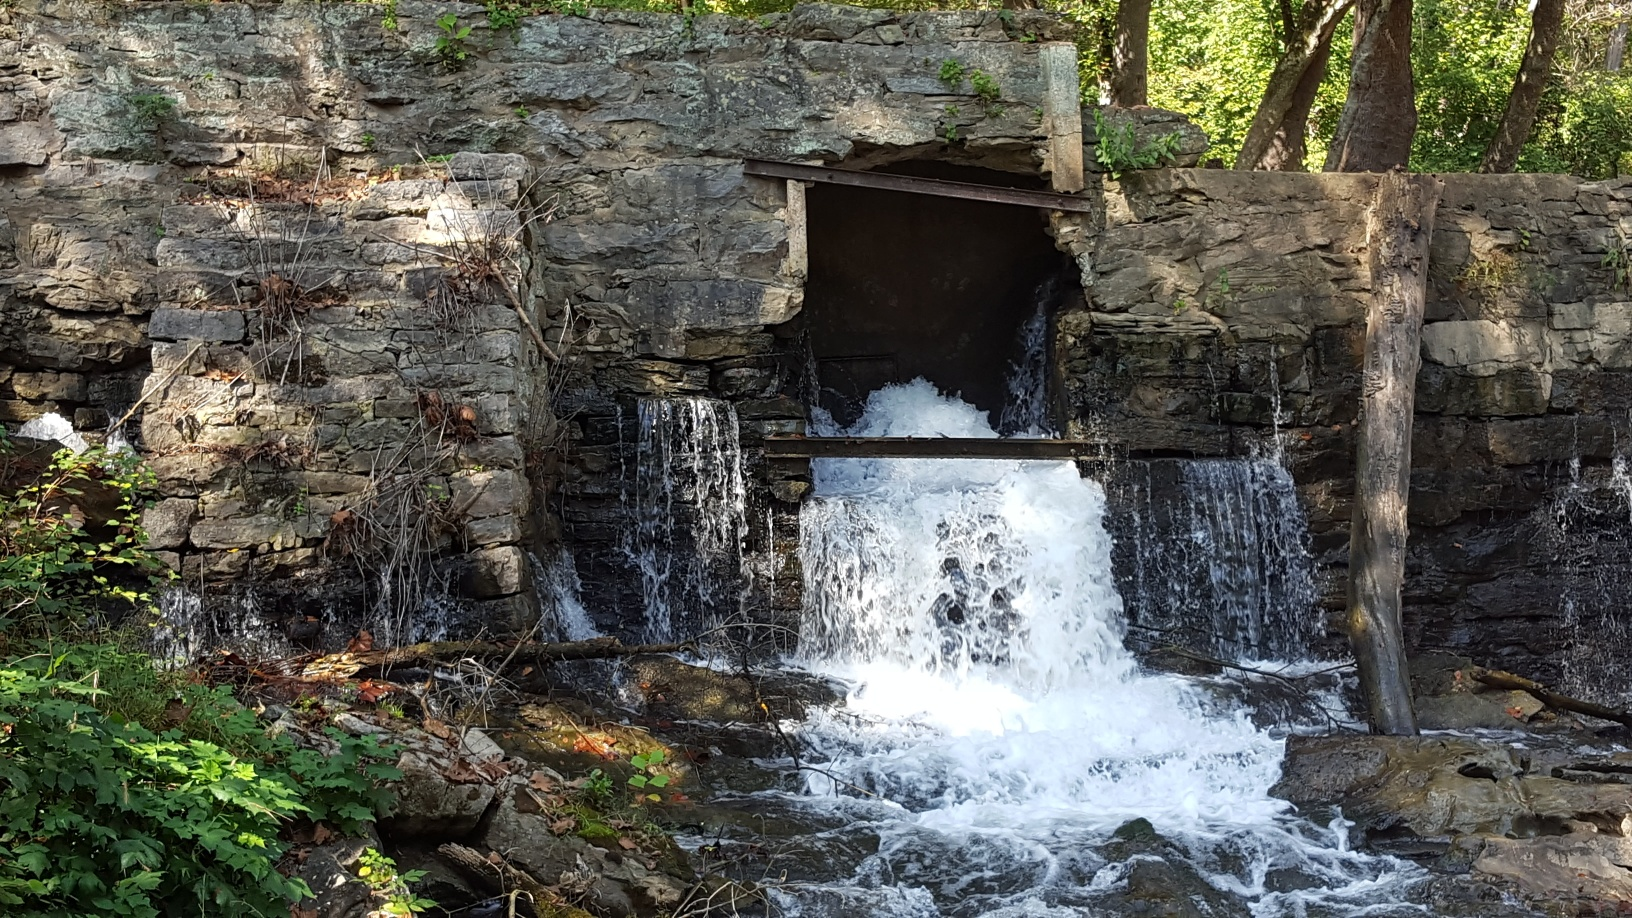 Repairs needed for the dam.